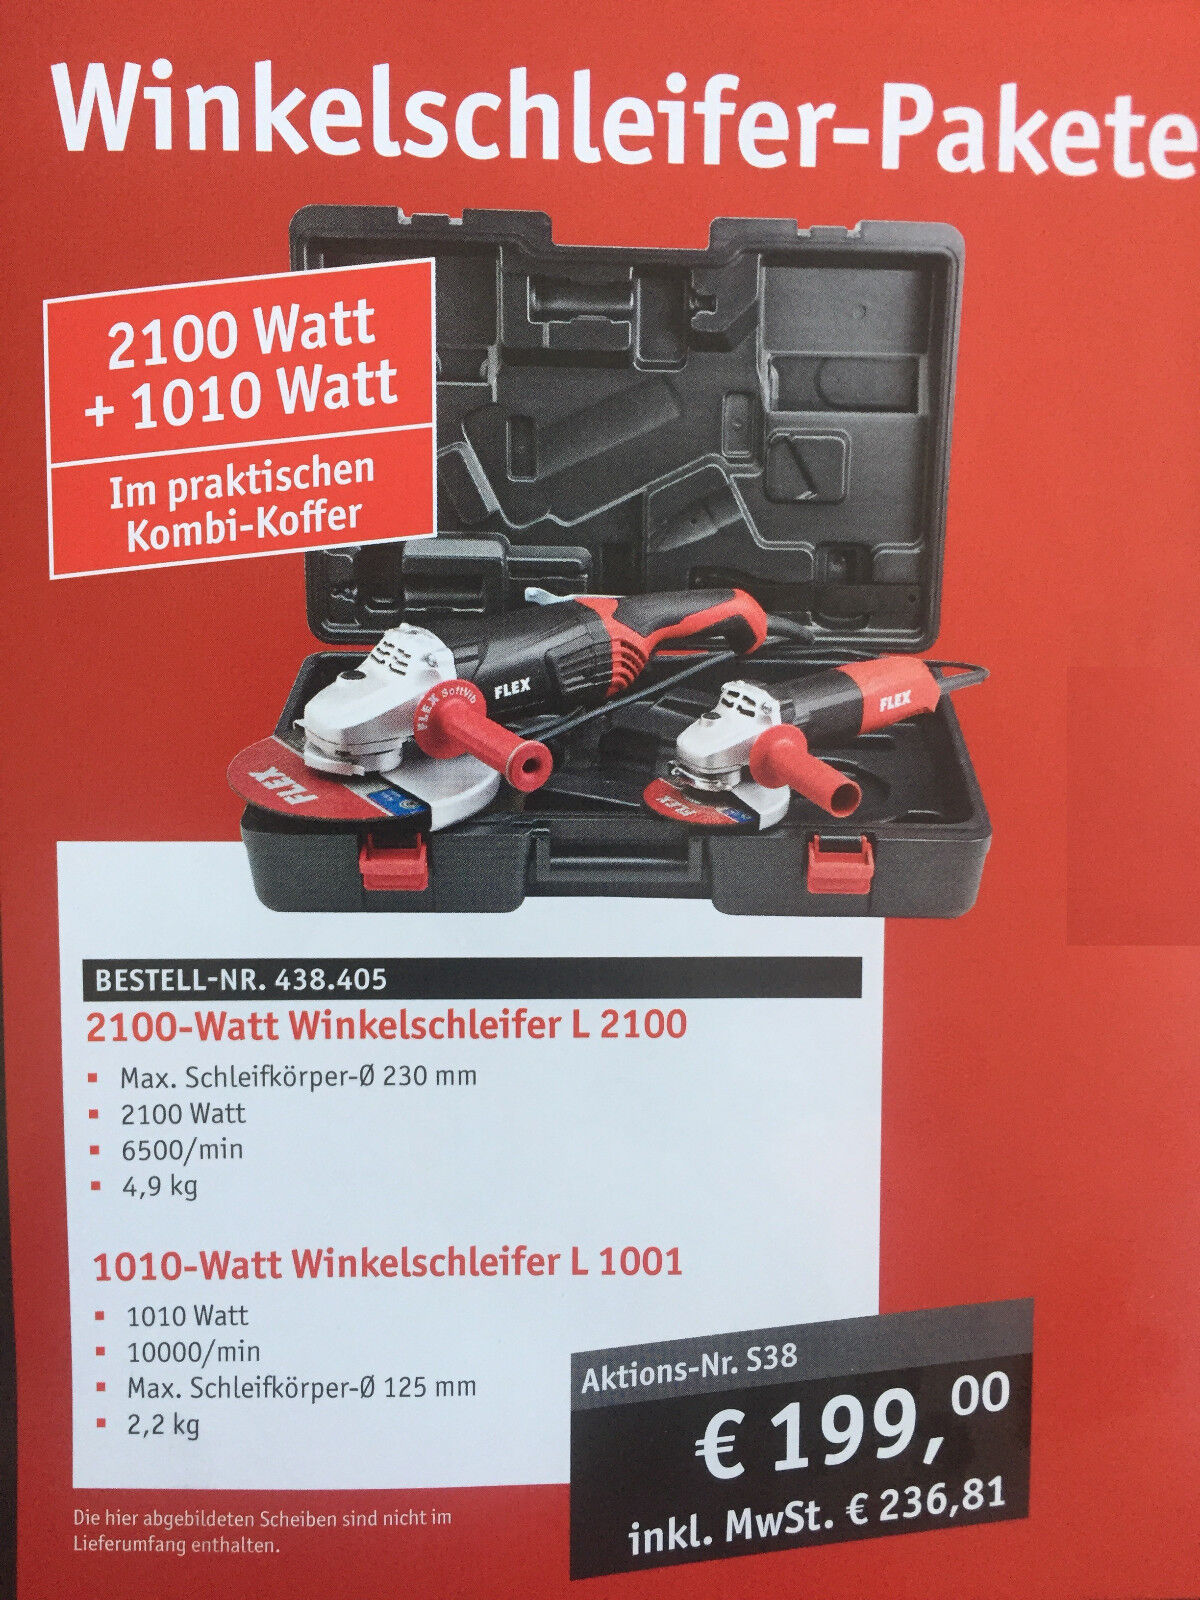 Flex Winkelschleifer Set L2100 230mm 2100W +L1001 125mm In Koffer  438405